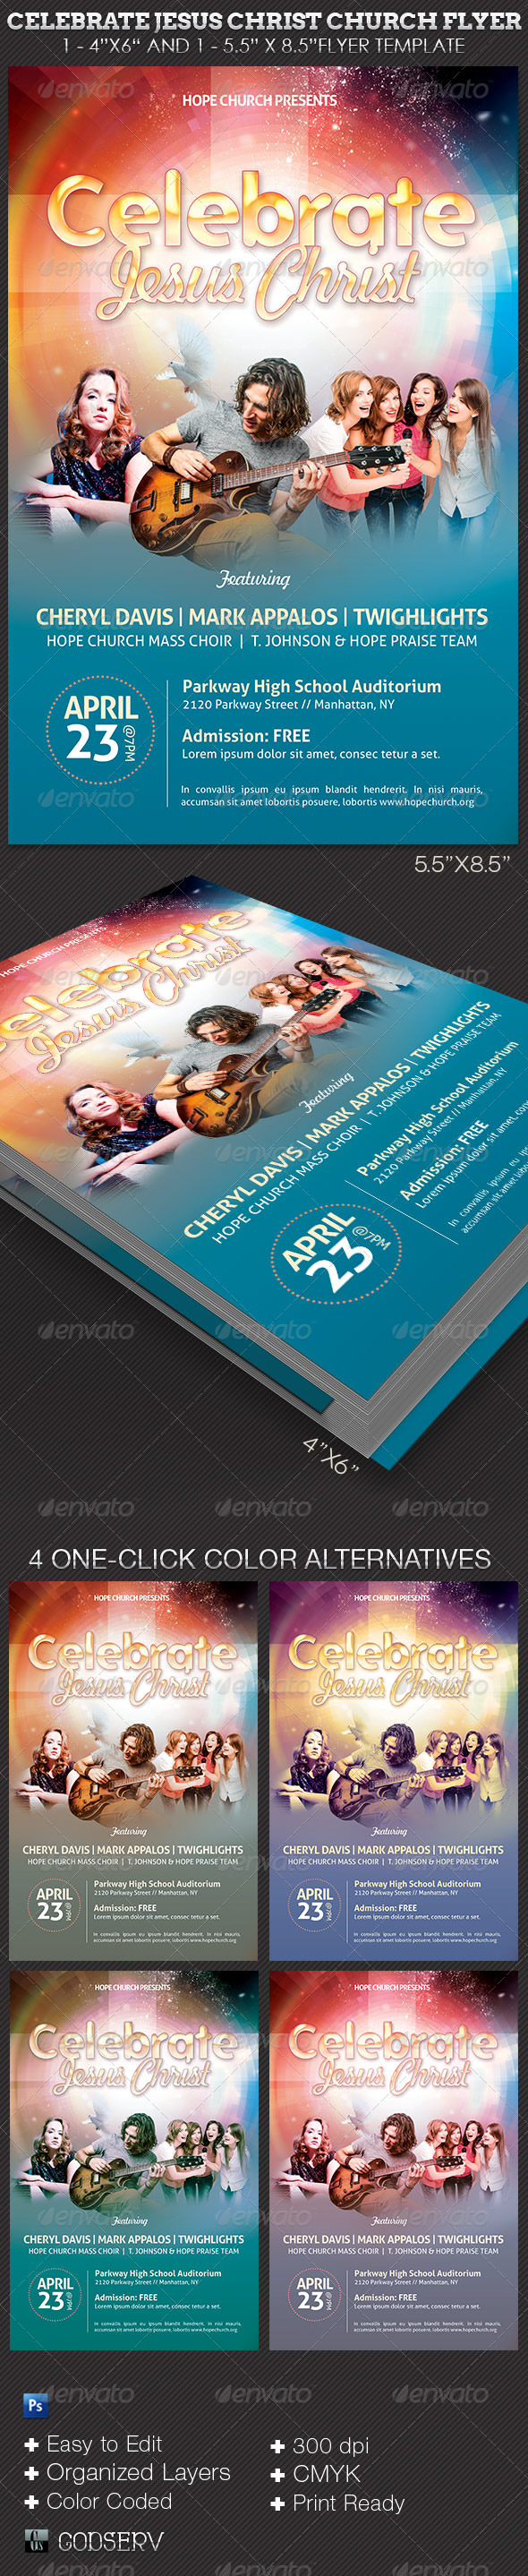 Celebrate Jesus Christ Concert Flyer Template - Church Flyers